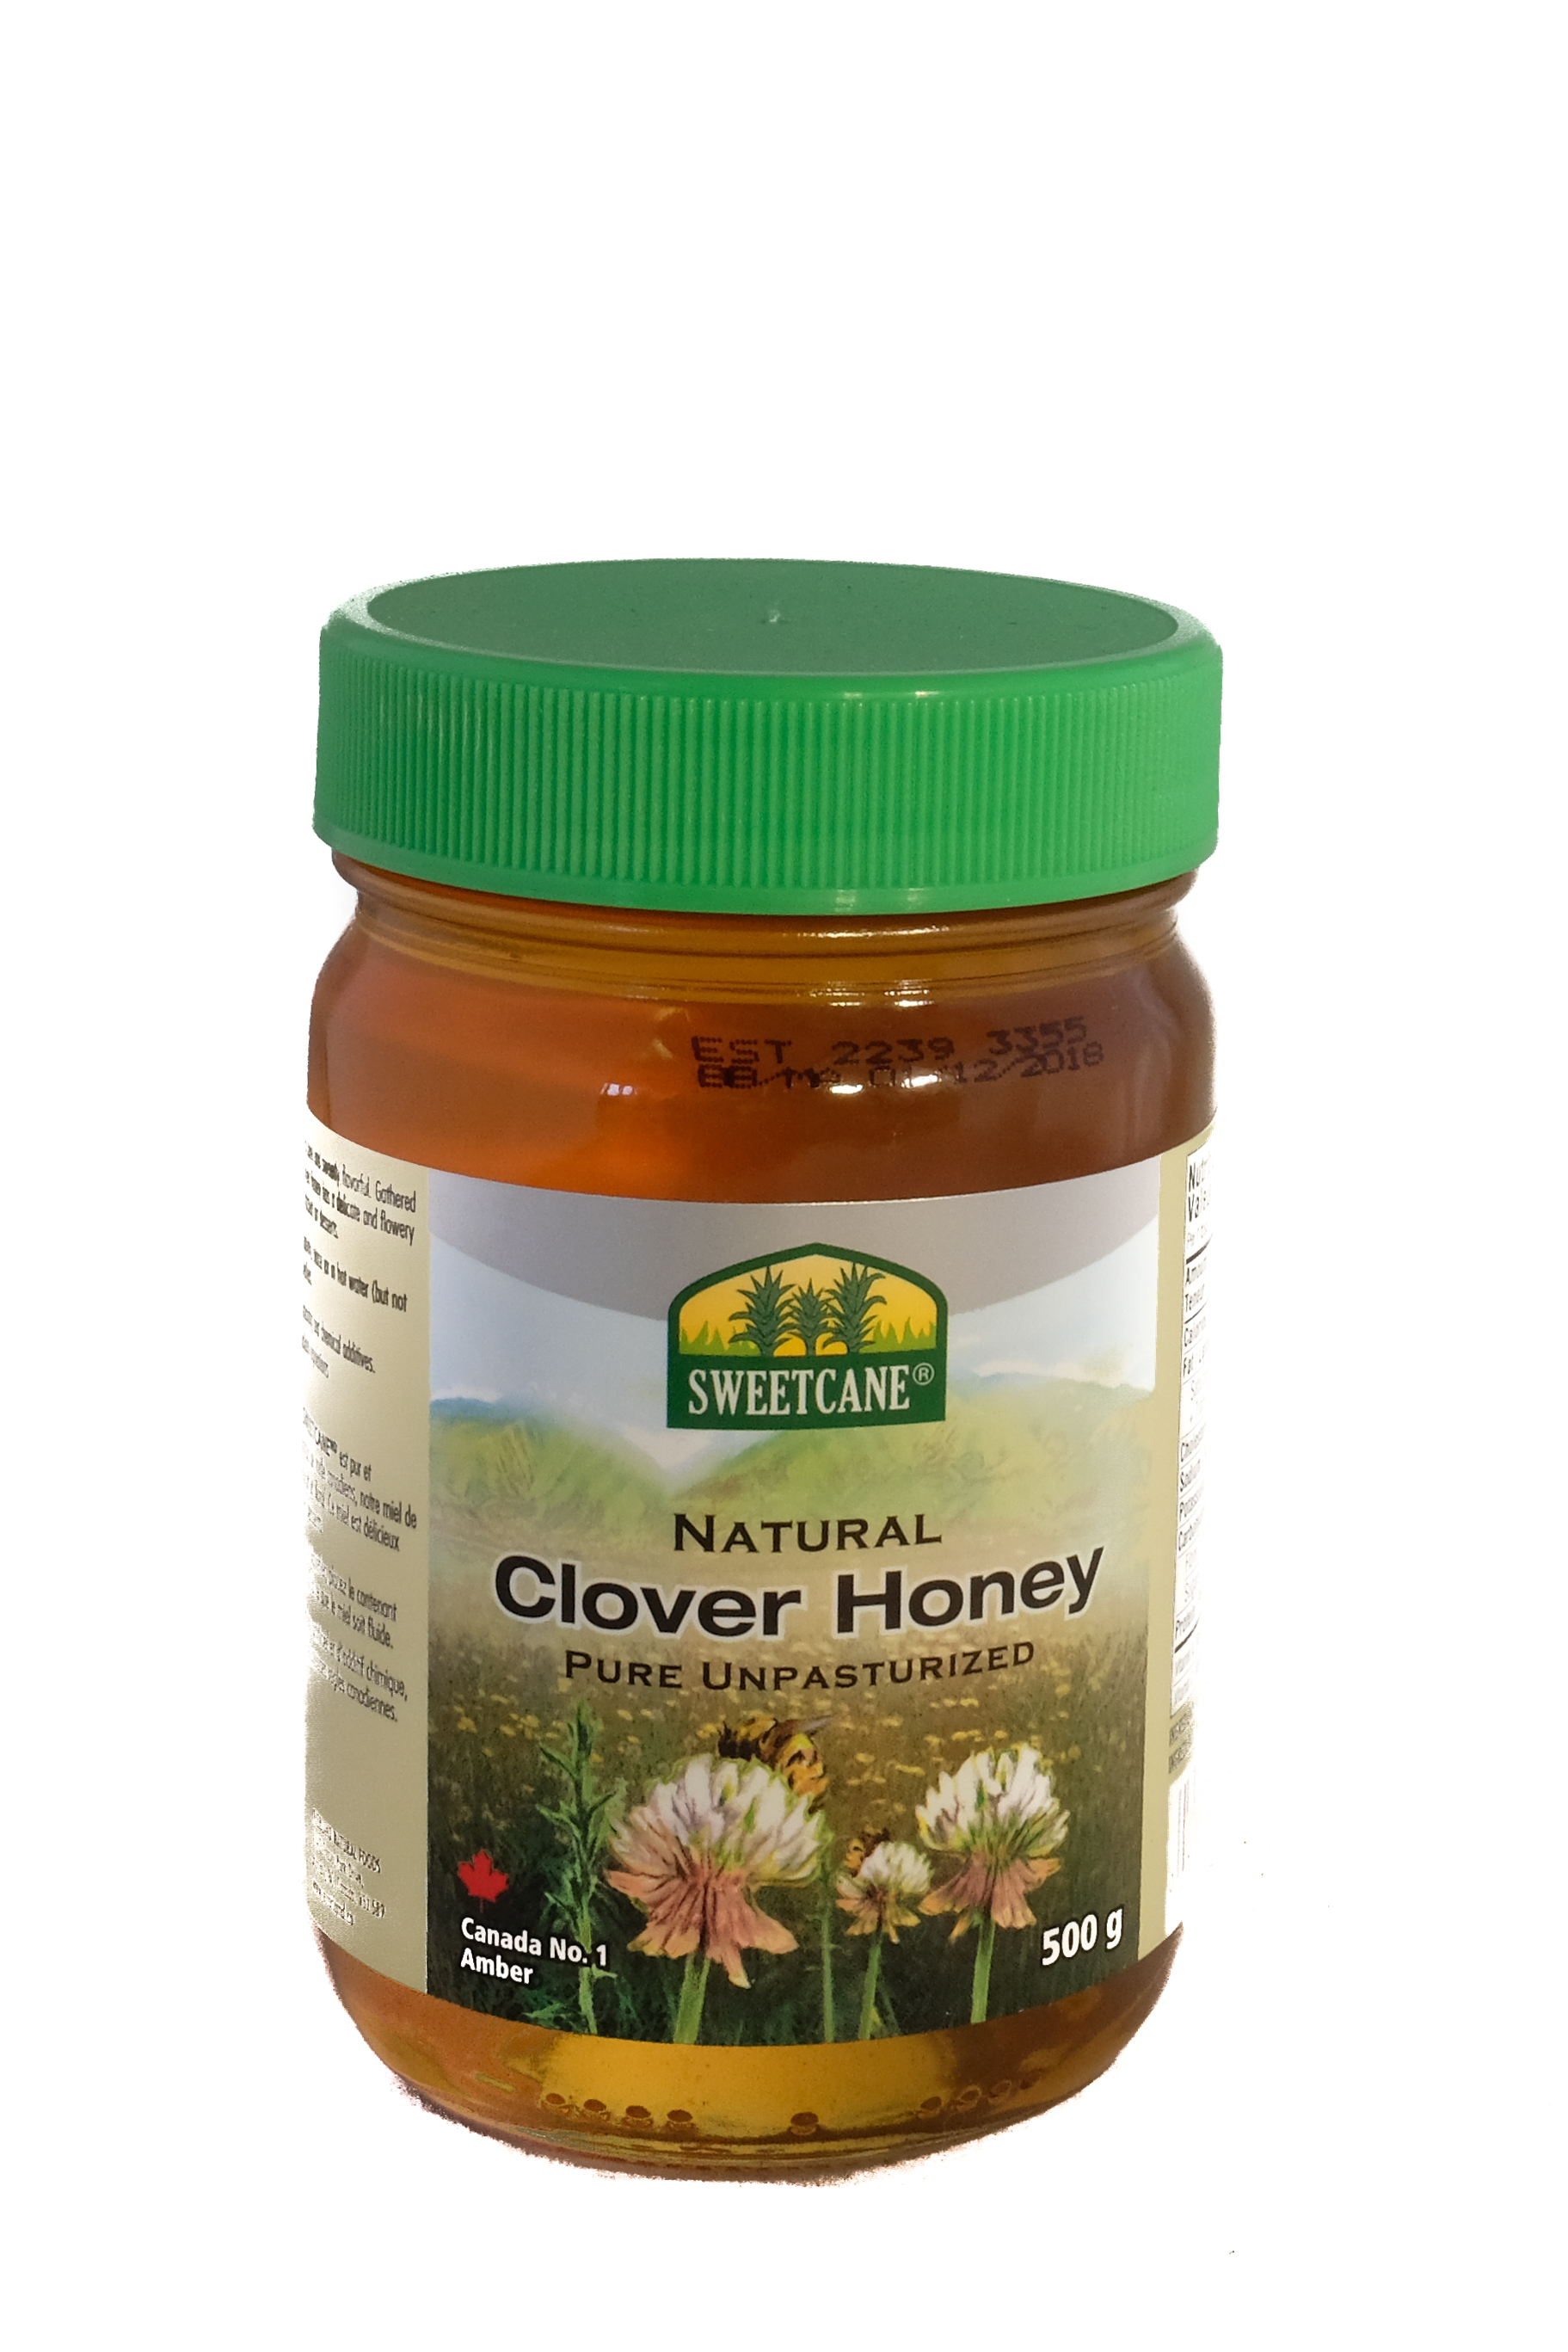 Natural Clover Honey